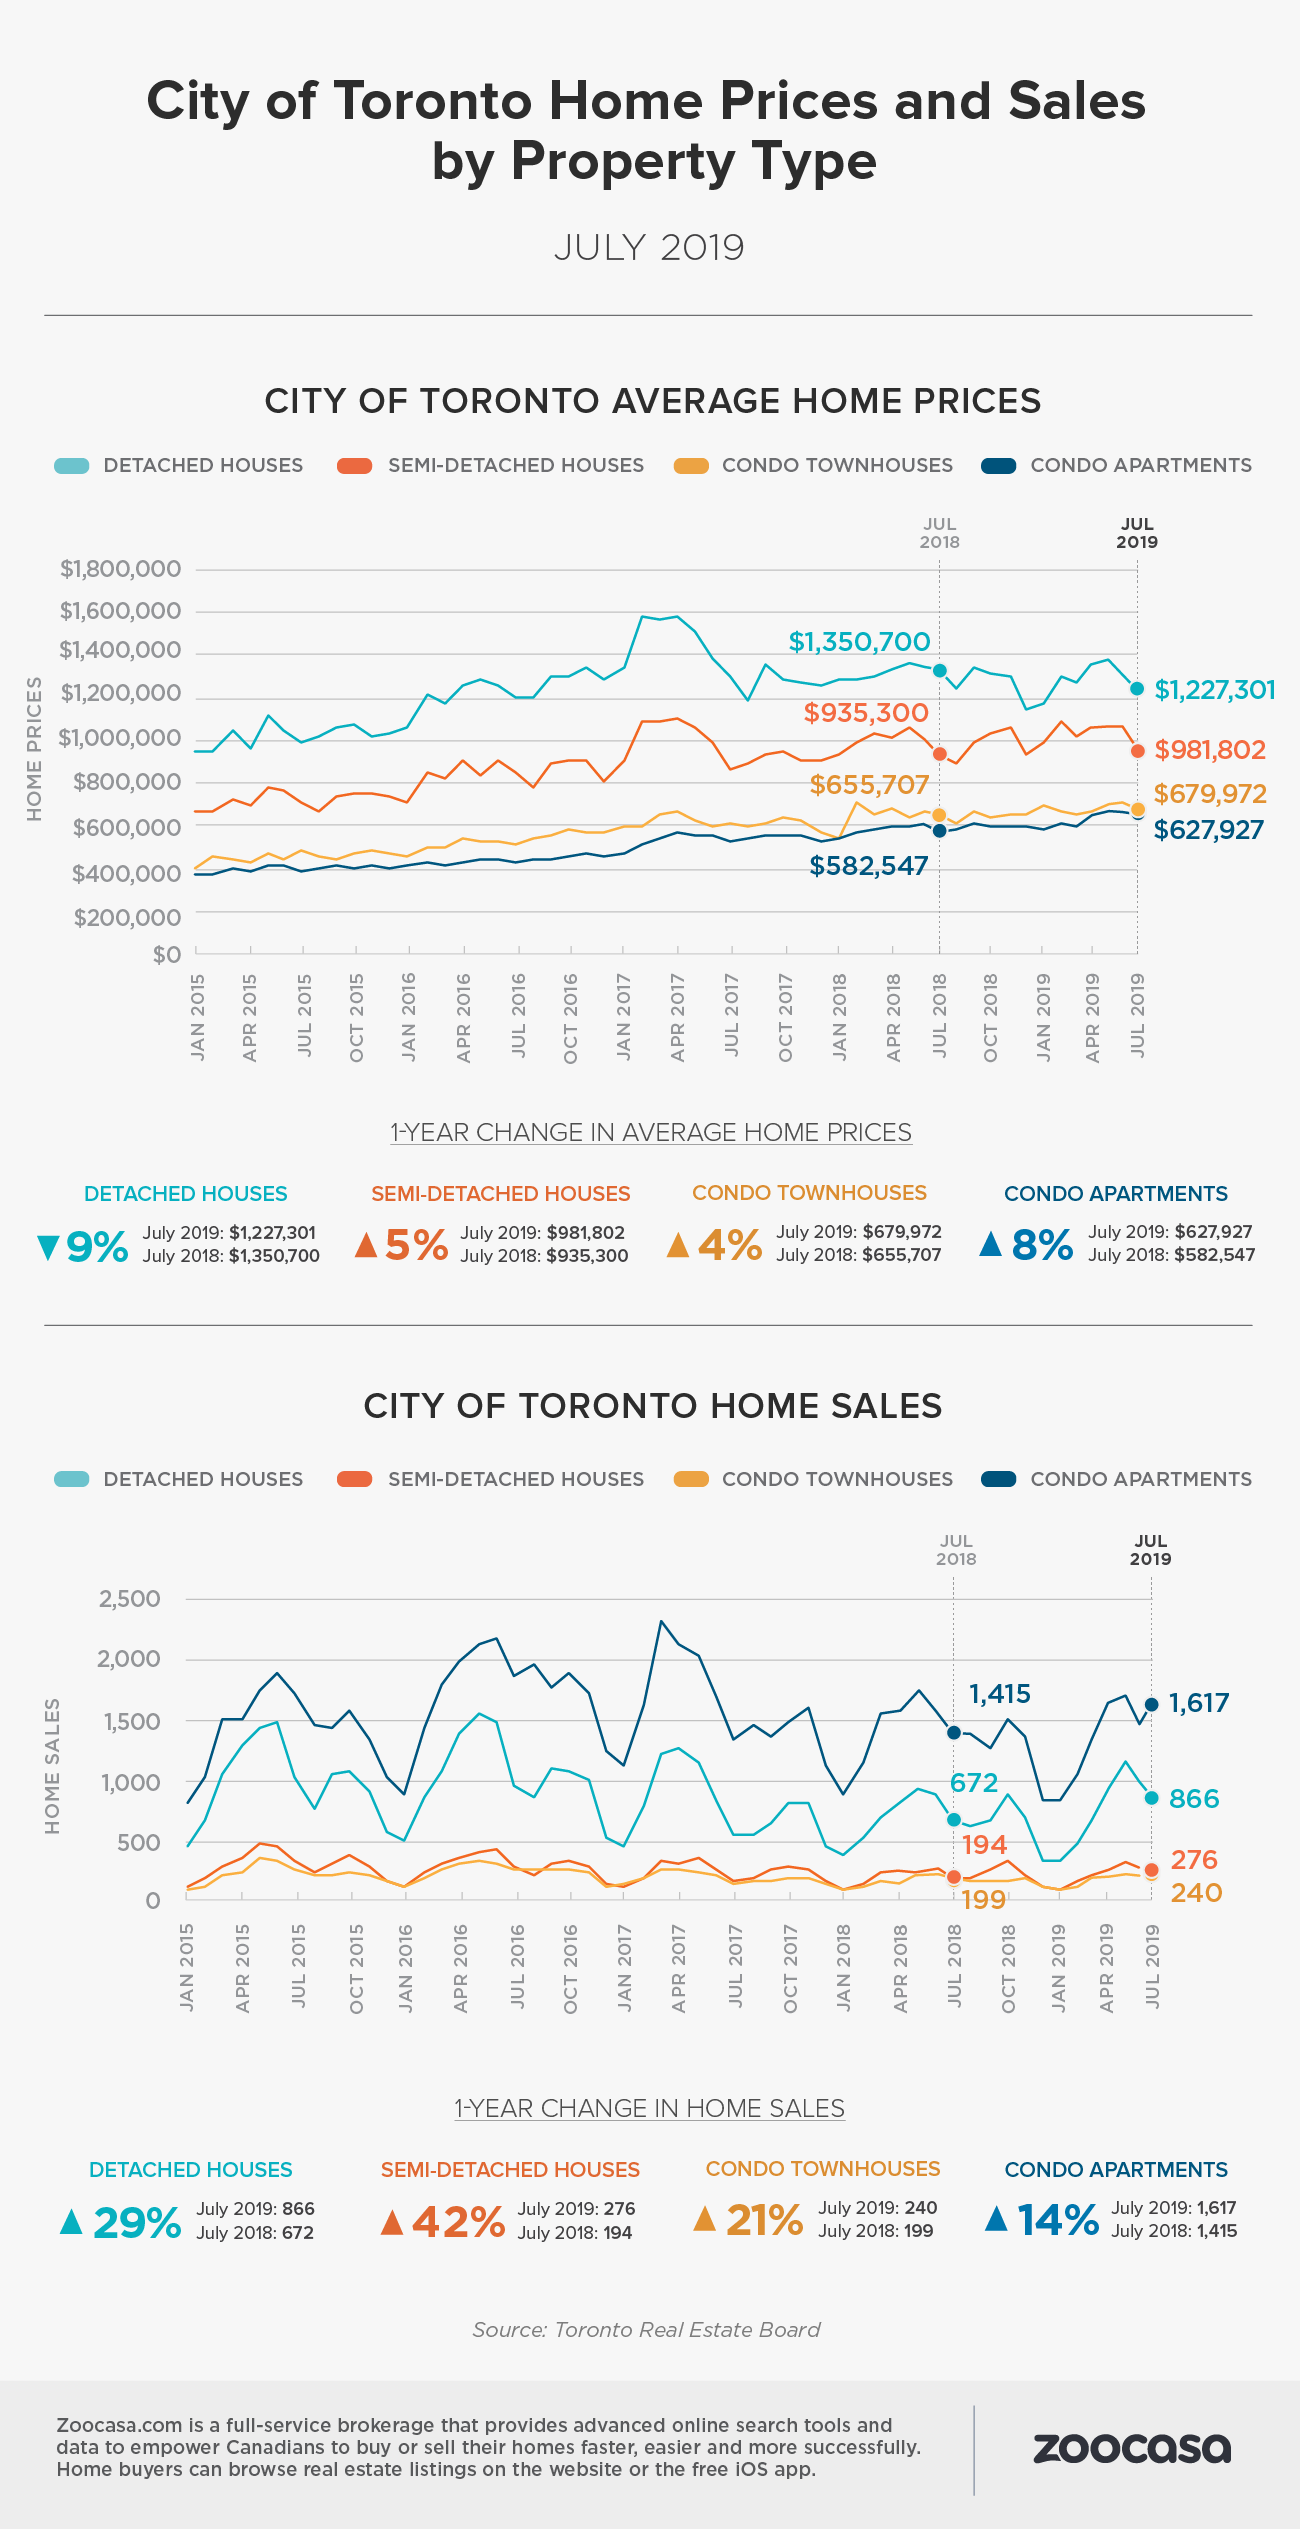 toronto-home-sales-prices-july-2019